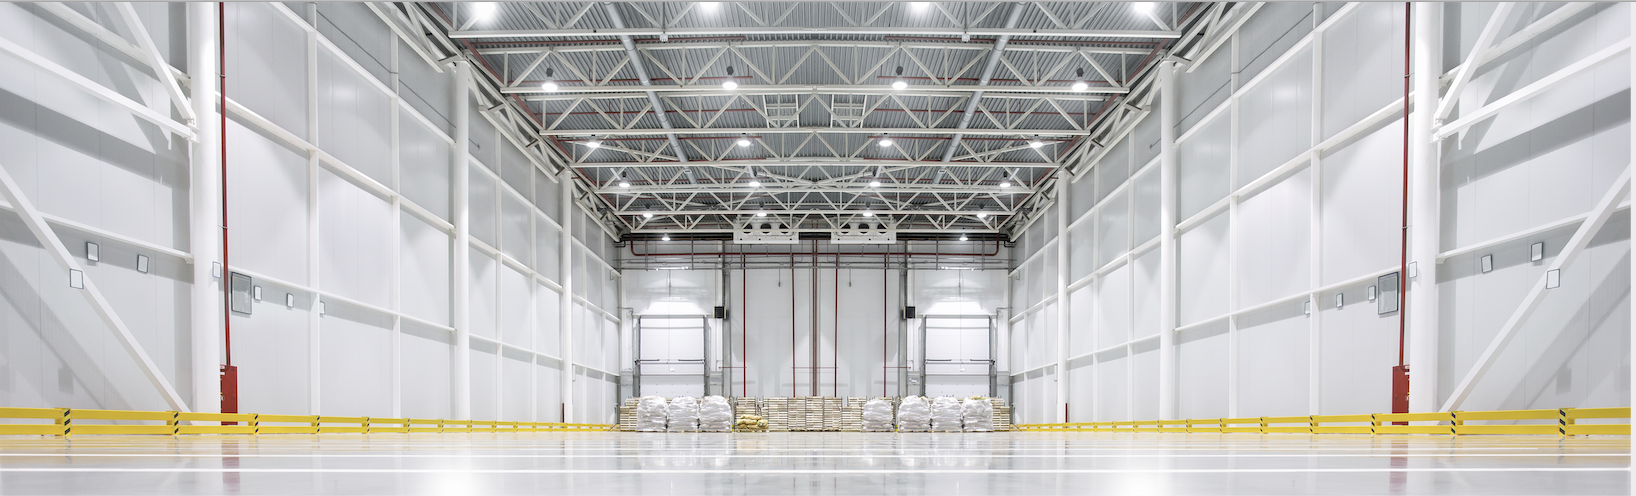 Photo of Inside View of Large Cold Storage Space